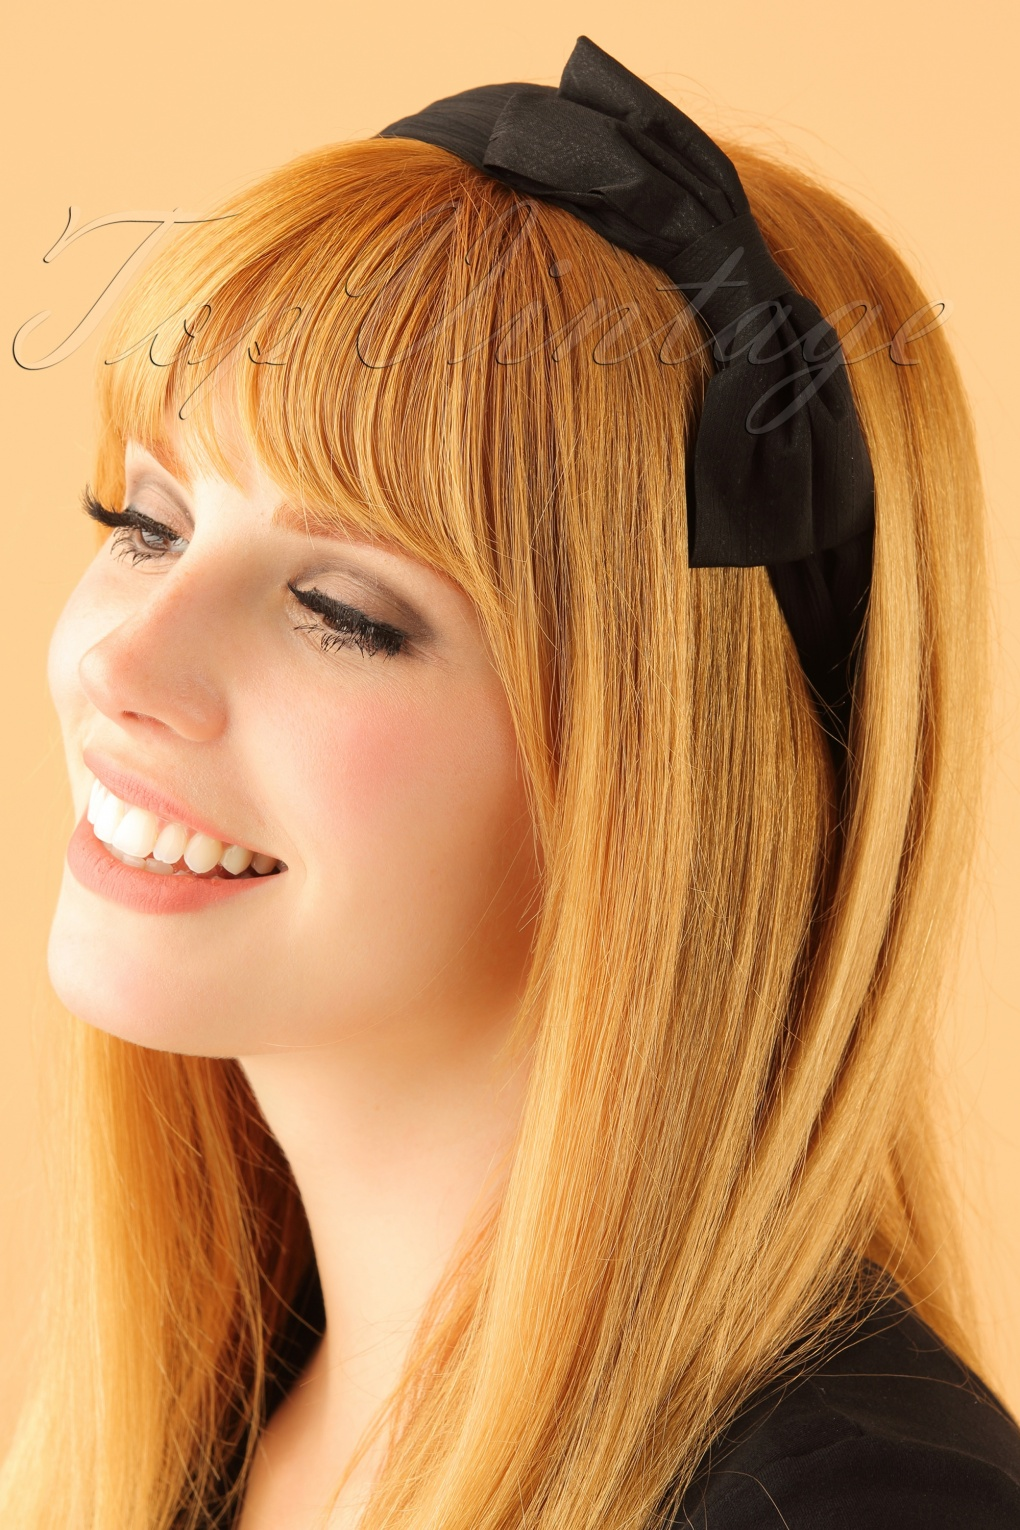 Vintage Hair Accessories: Combs, Headbands, Flowers, Scarf, Wigs 50s Bow Head Band in Black £6.18 AT vintagedancer.com